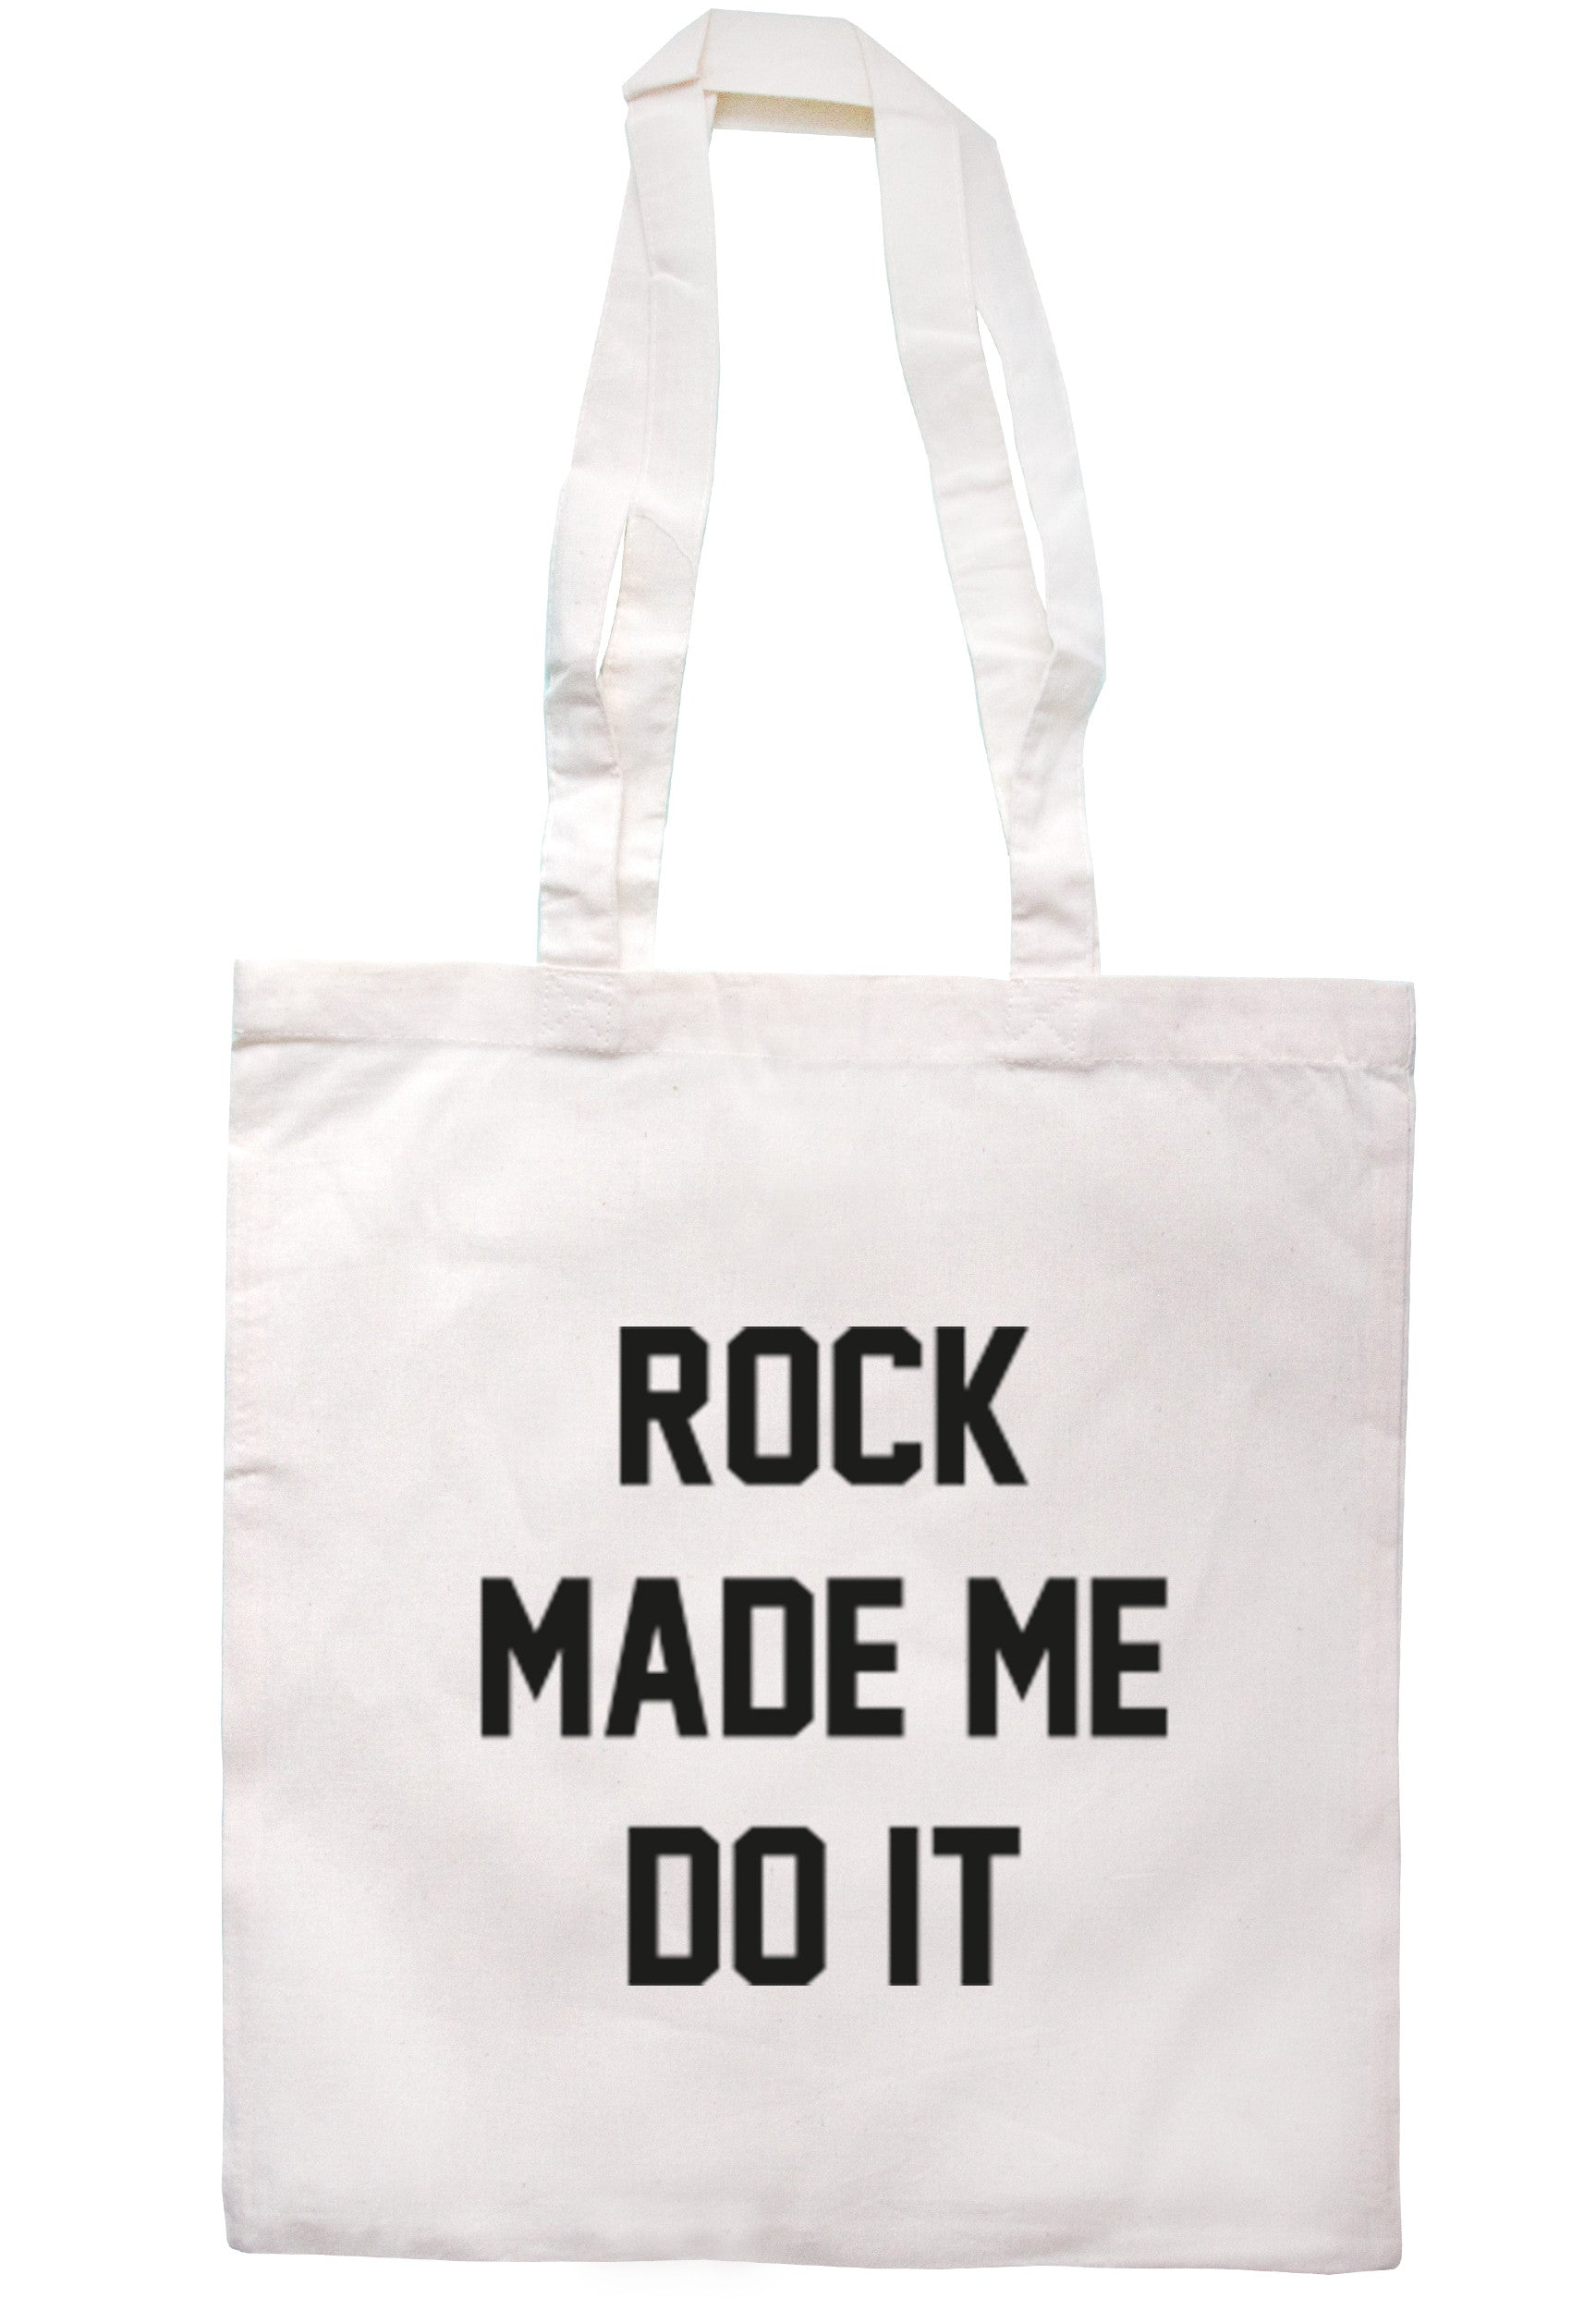 Rock Made Me Do It Tote Bag TB0183 - Illustrated Identity Ltd.